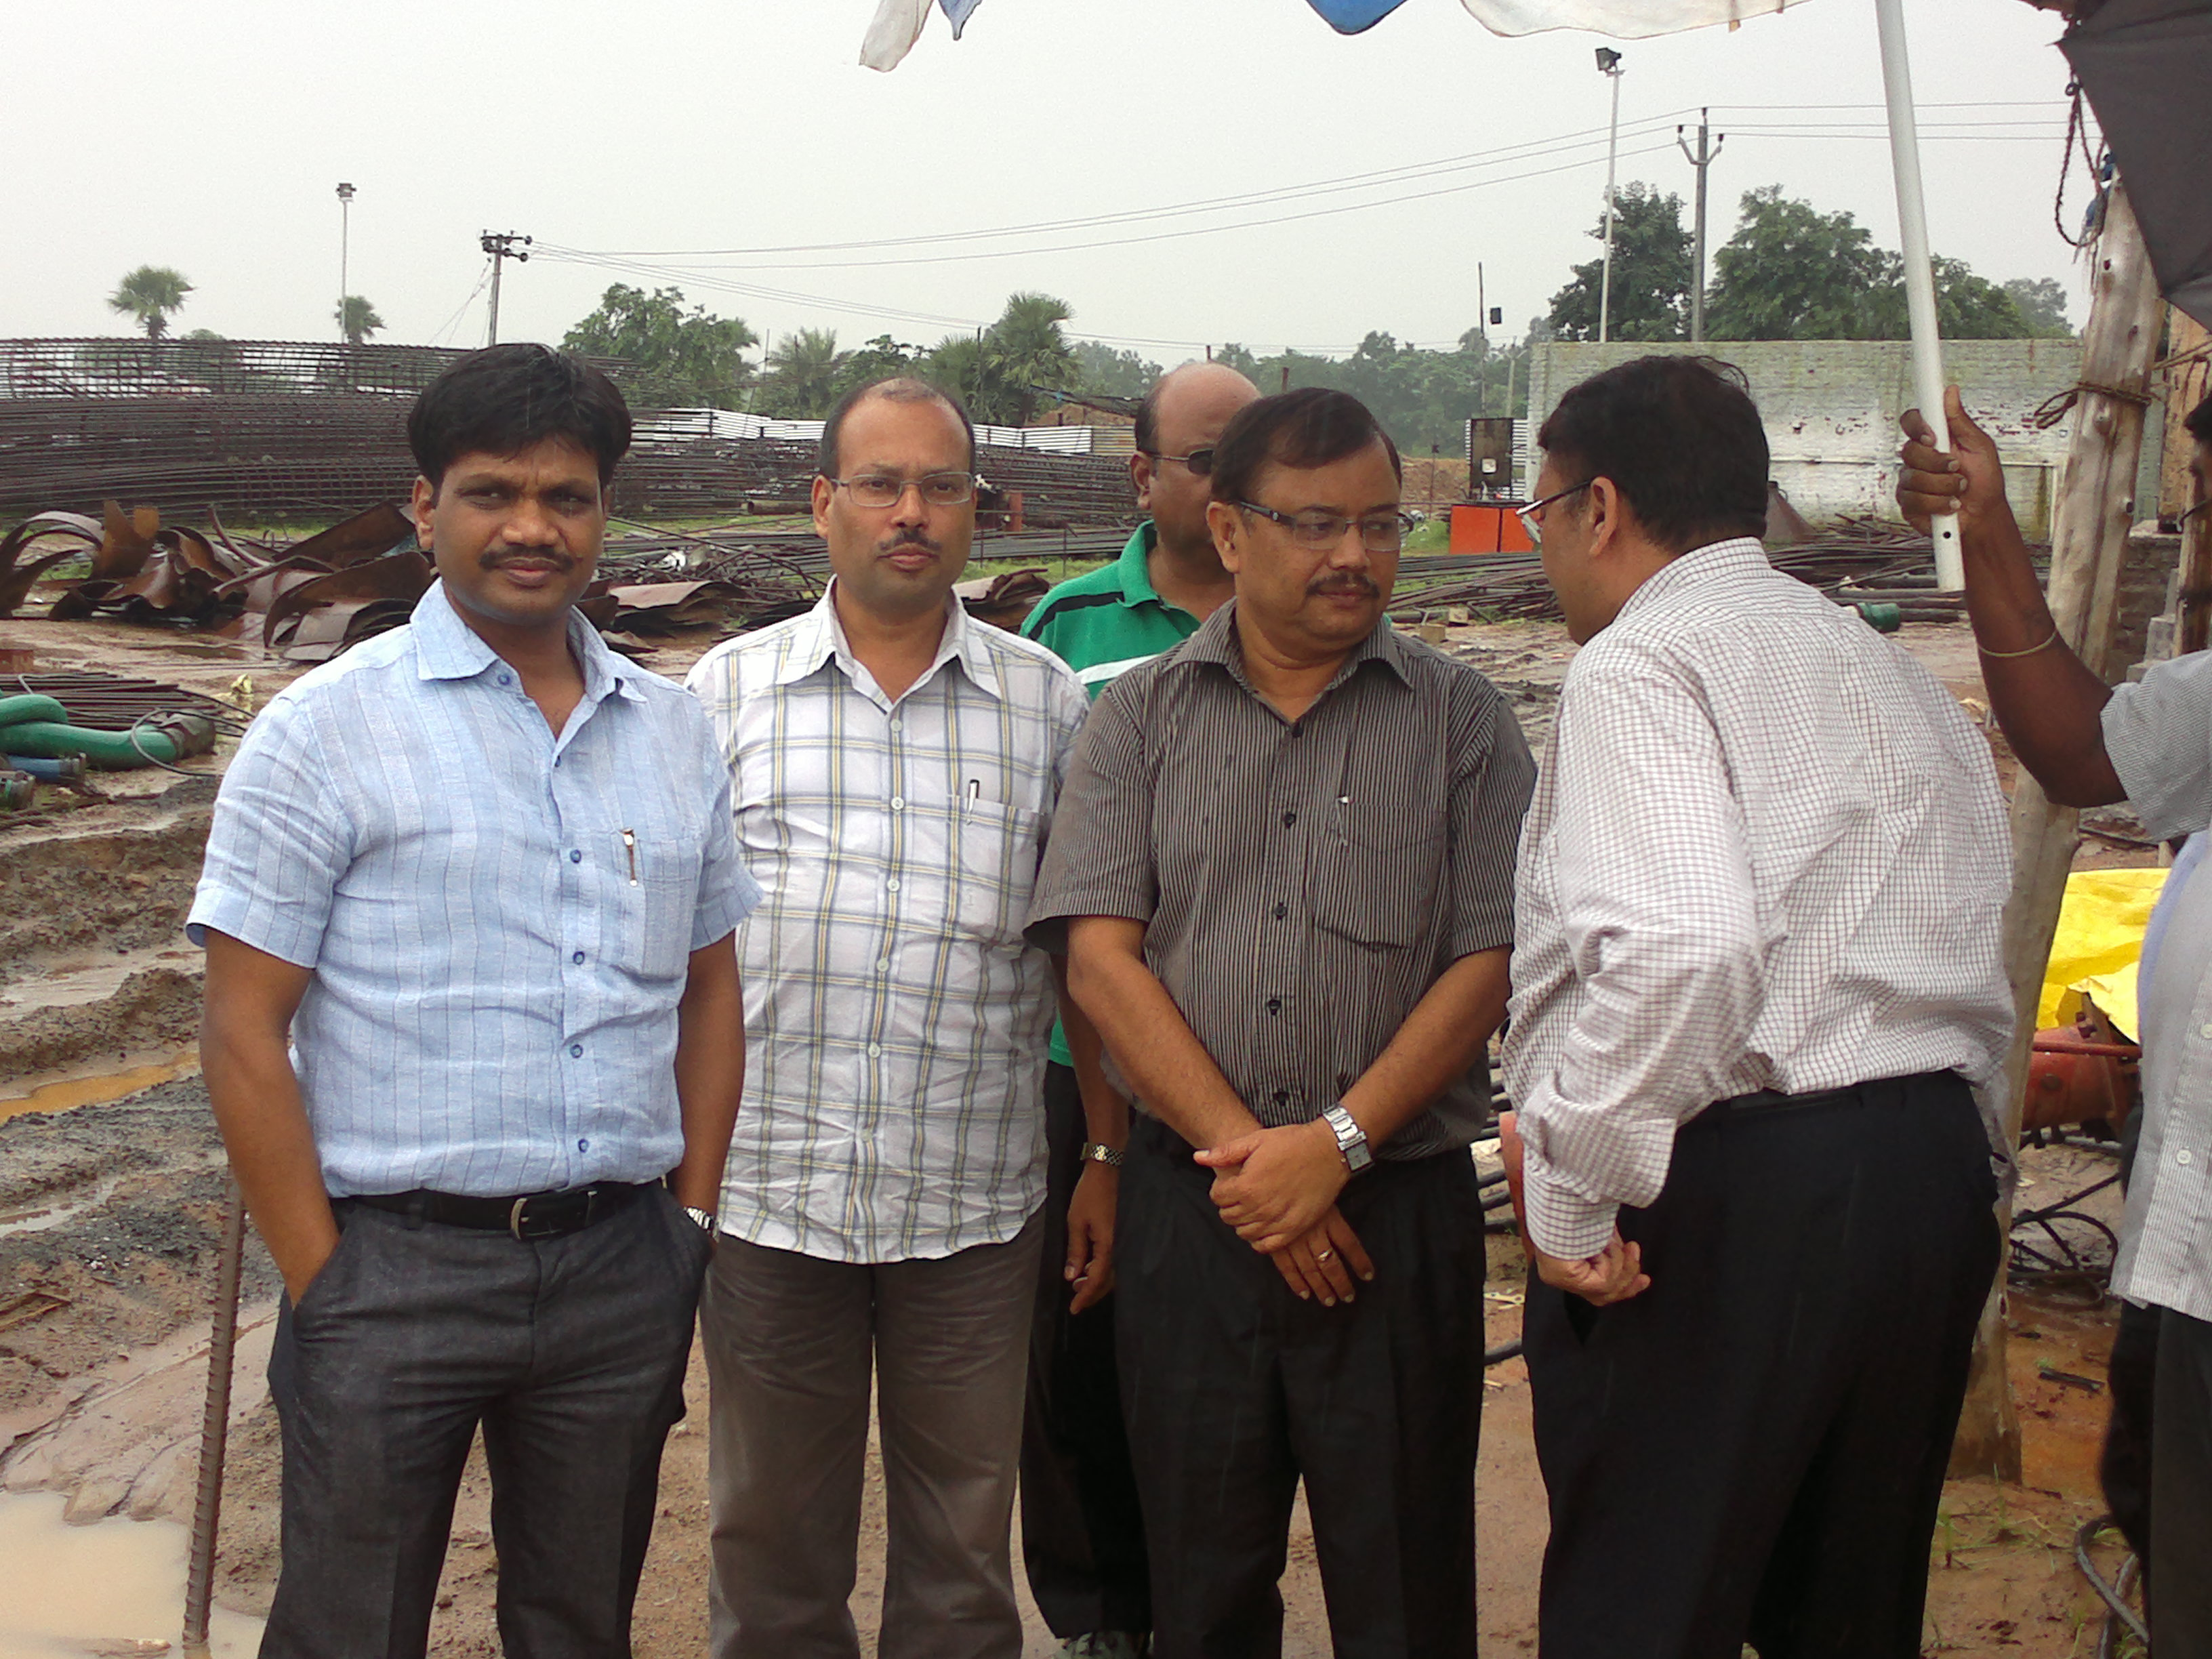 Visit of MD/ASRL with Commissioner Rail Co-ordination/Govt of Odisha and CPM-III, RVNL to Anghul-Sukinda Rail Line site. They held a meeting with Dr A. Padhi, IAS, RDC and Sri A. Agarwal, IAS on 18 Aug 2012